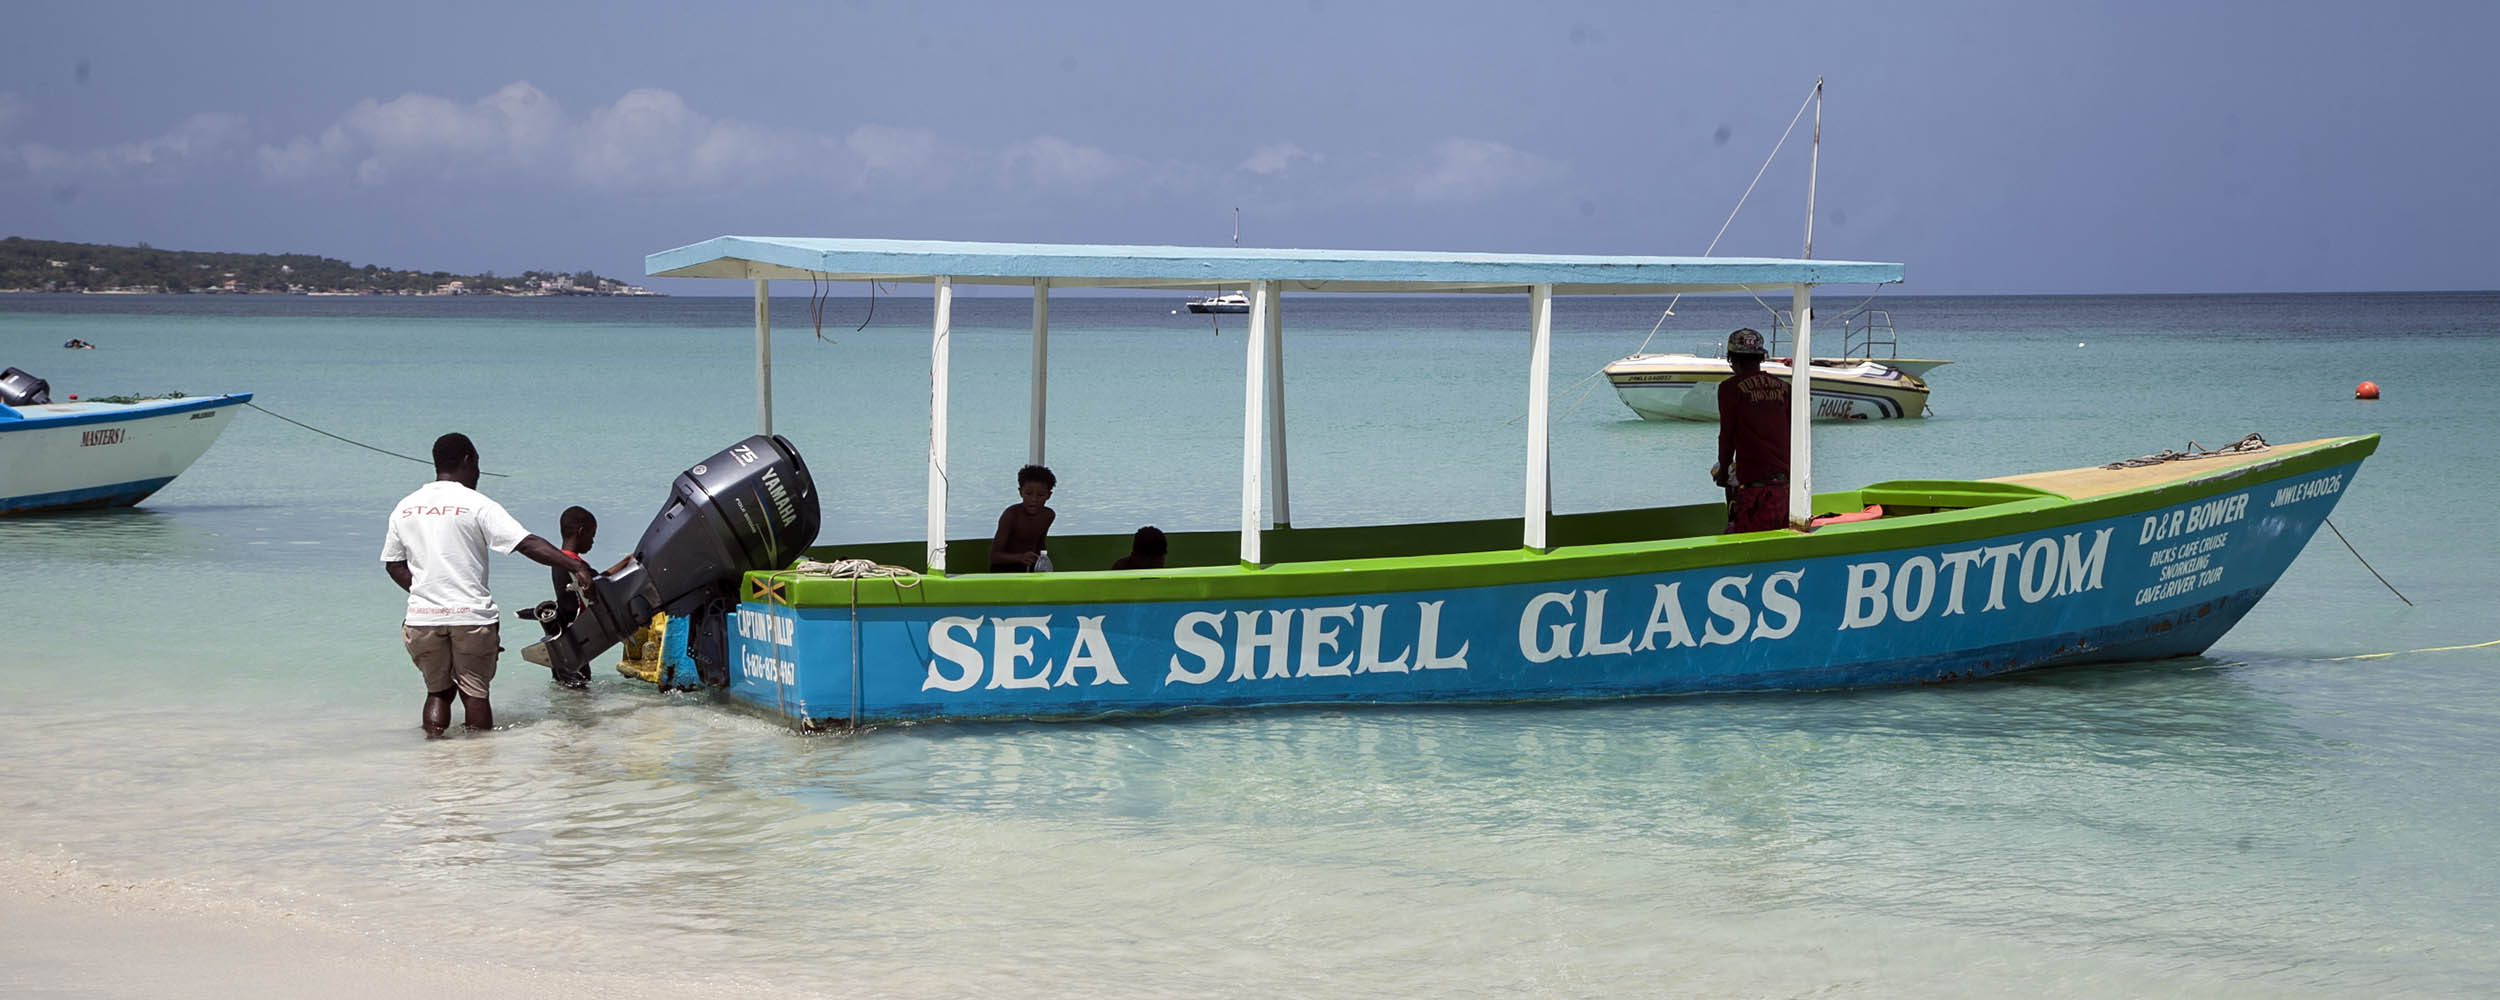 Sea Shell Glass Bottom Boat - Negril Beach, Negril Jamaica